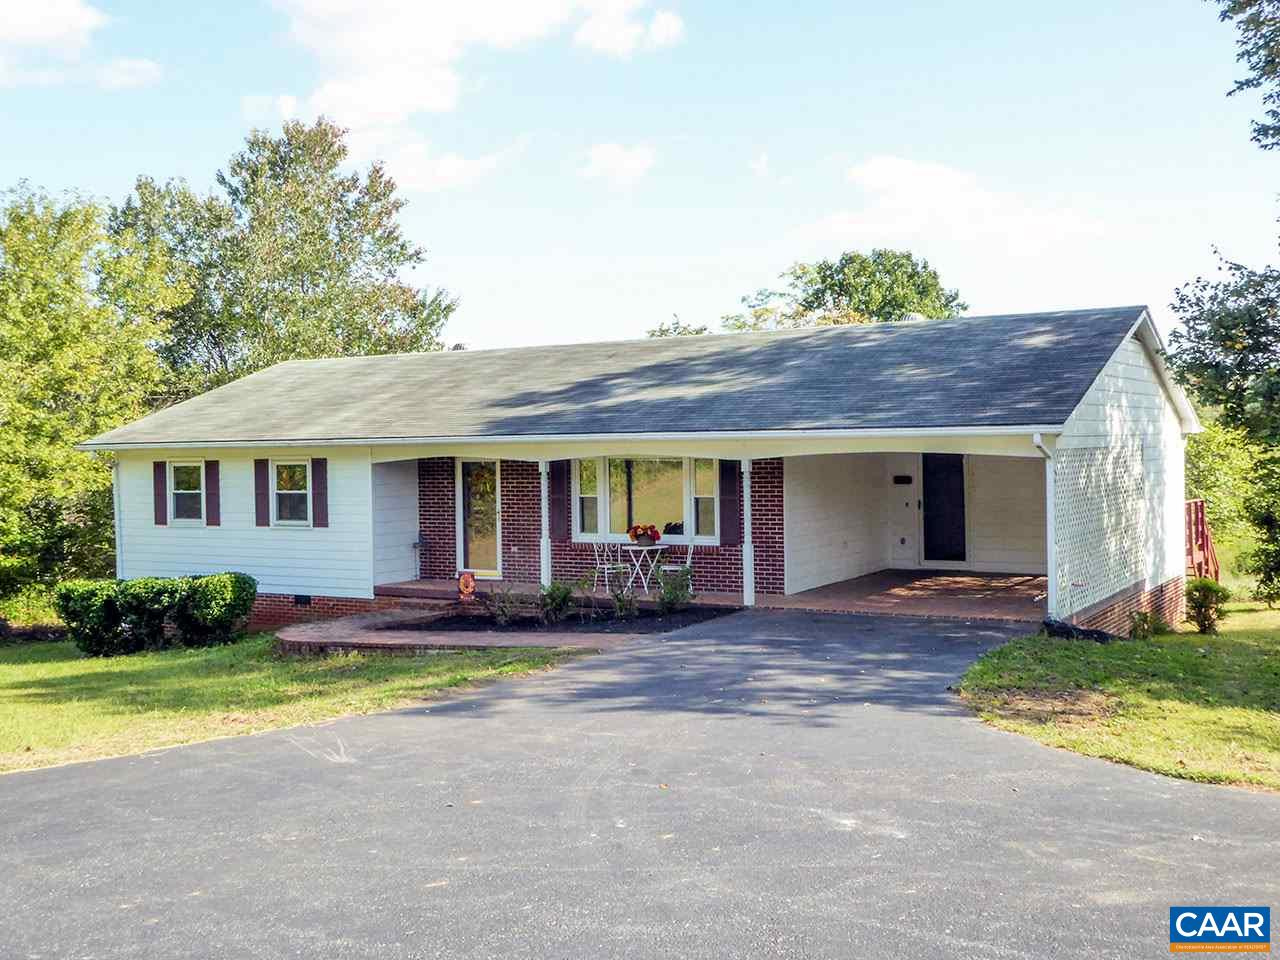 home for sale , MLS #567247, 2656 Dunnes Shop Rd